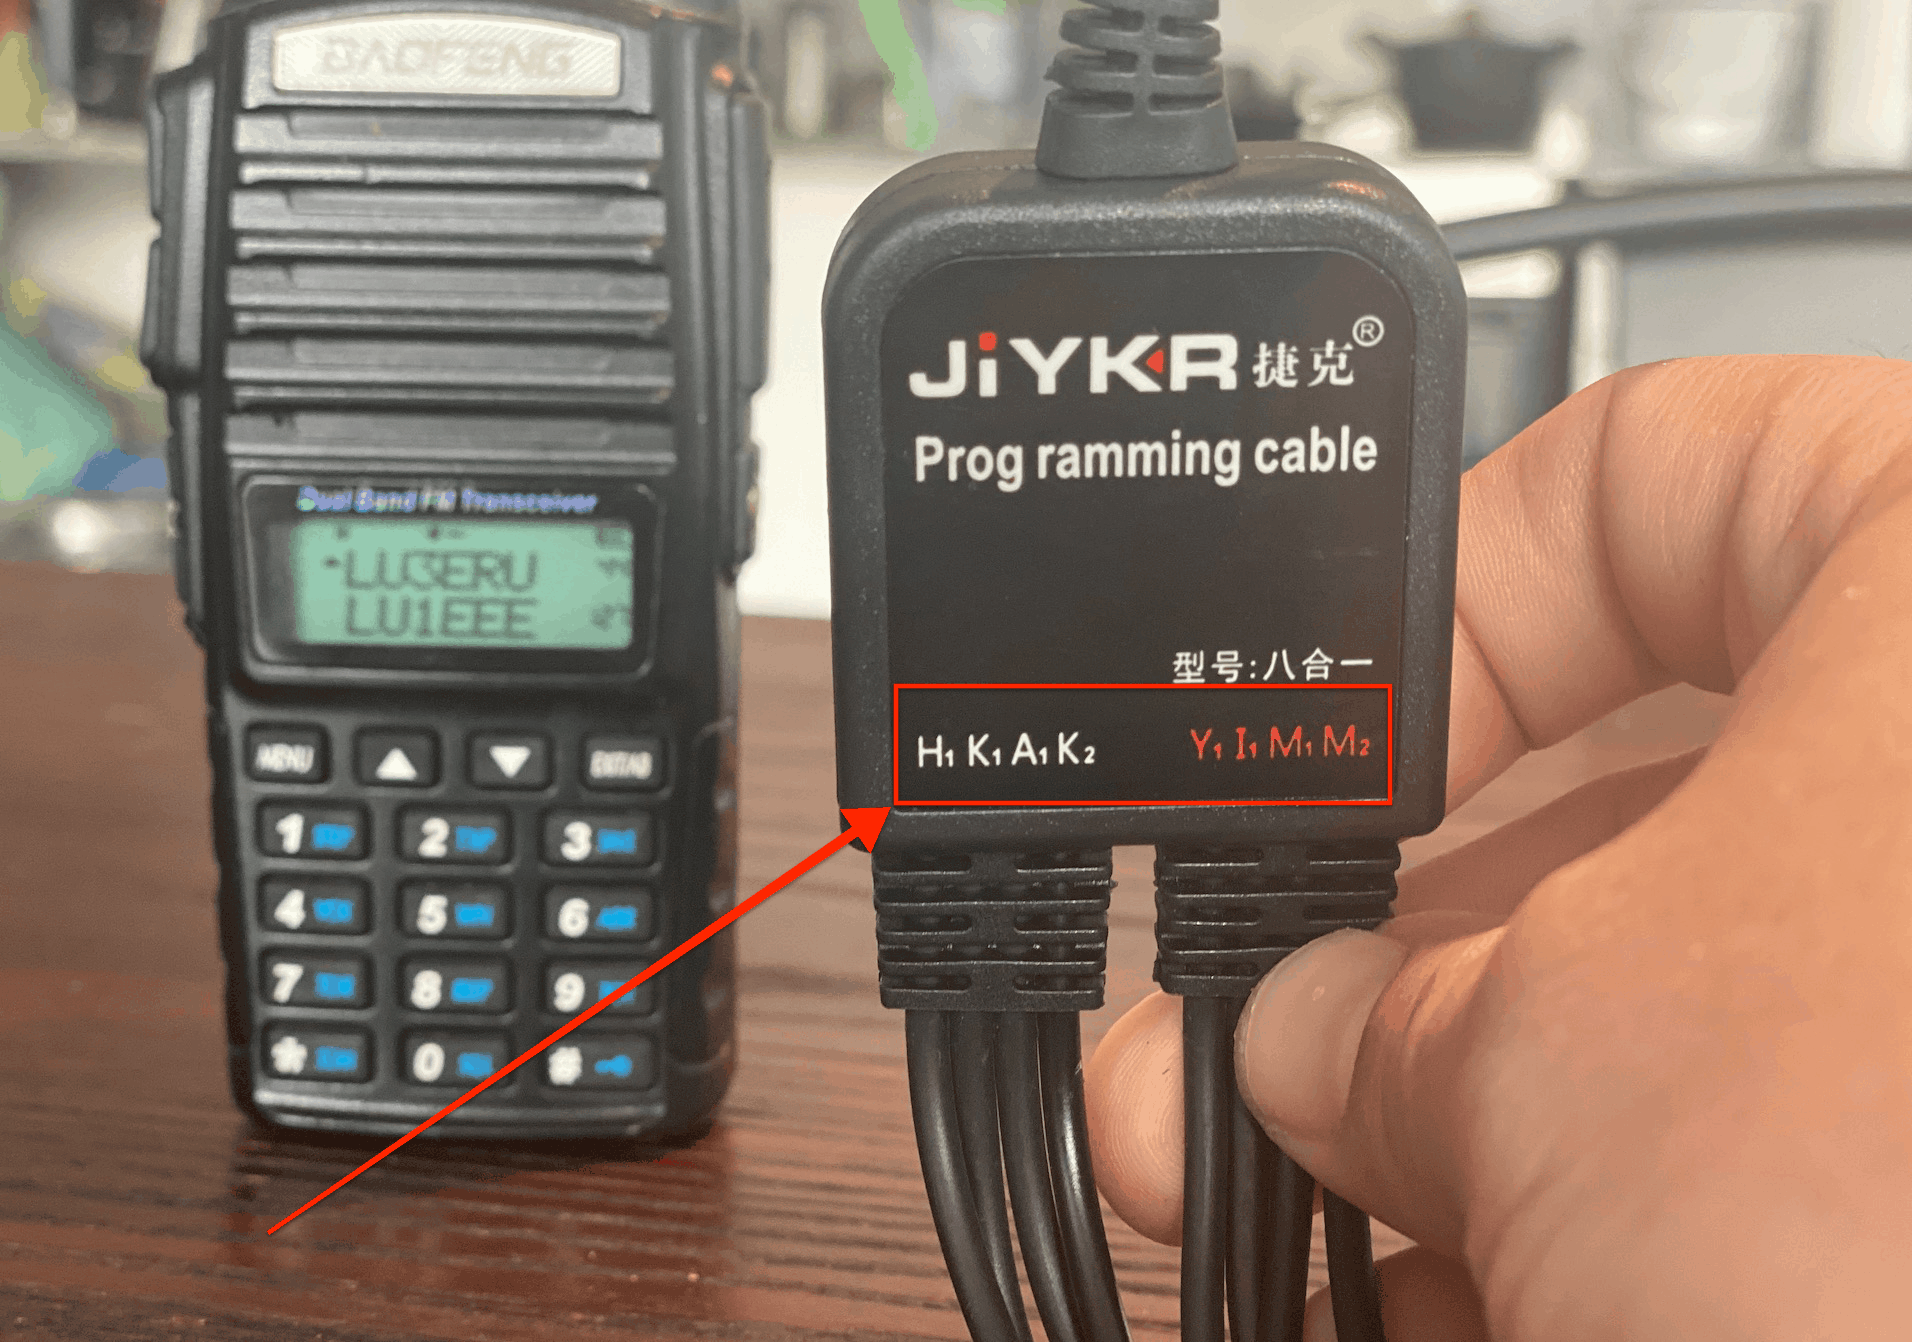 JiYKR 8 in 1 radio programming cable review